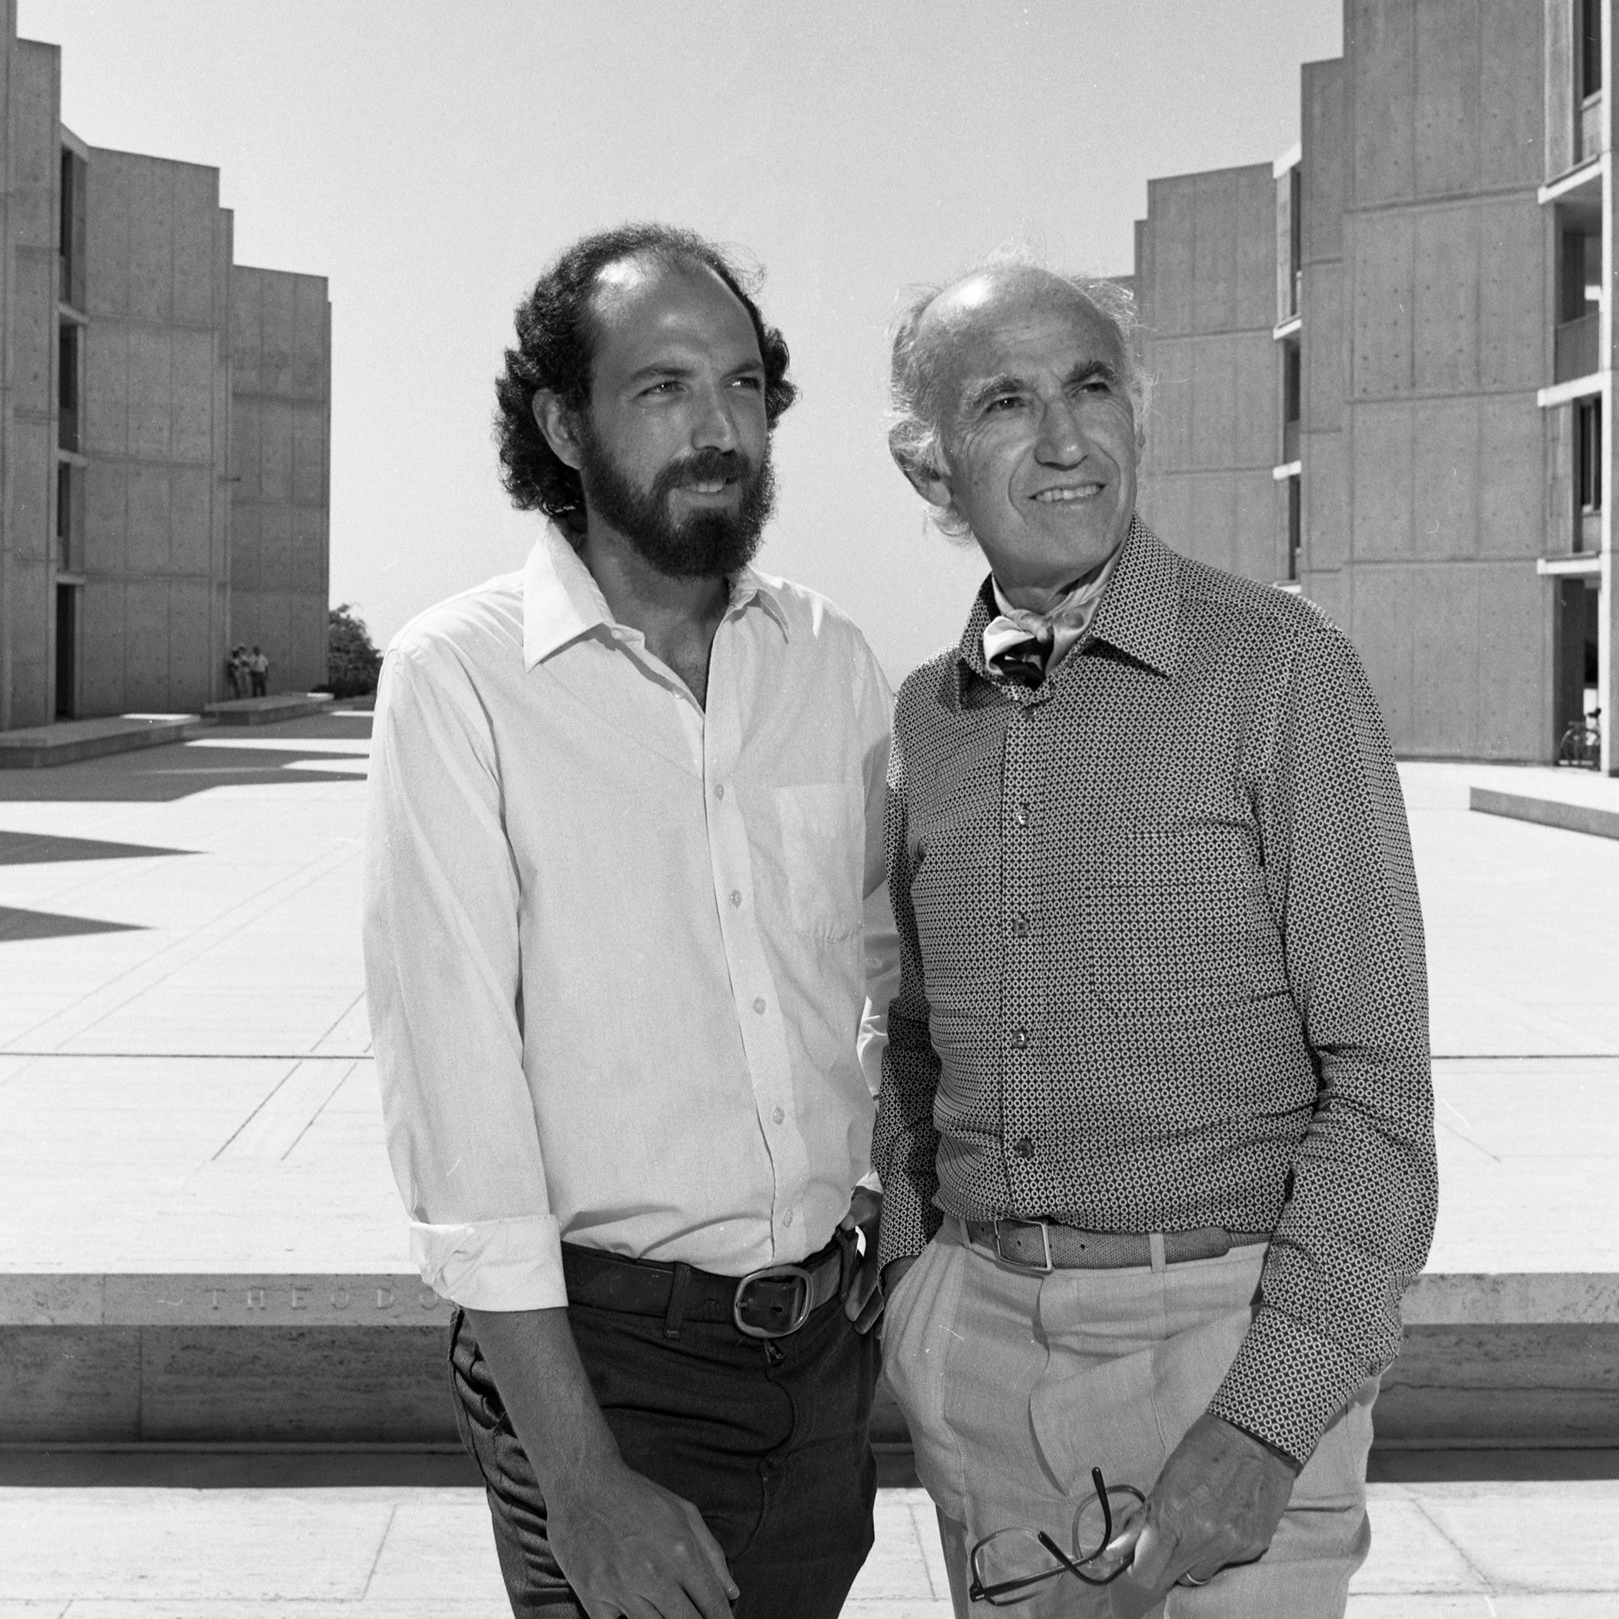 Jonas Salk, right, and Jonathan Salk, left, at the Salk Institute in La Jolla, California, 1981.